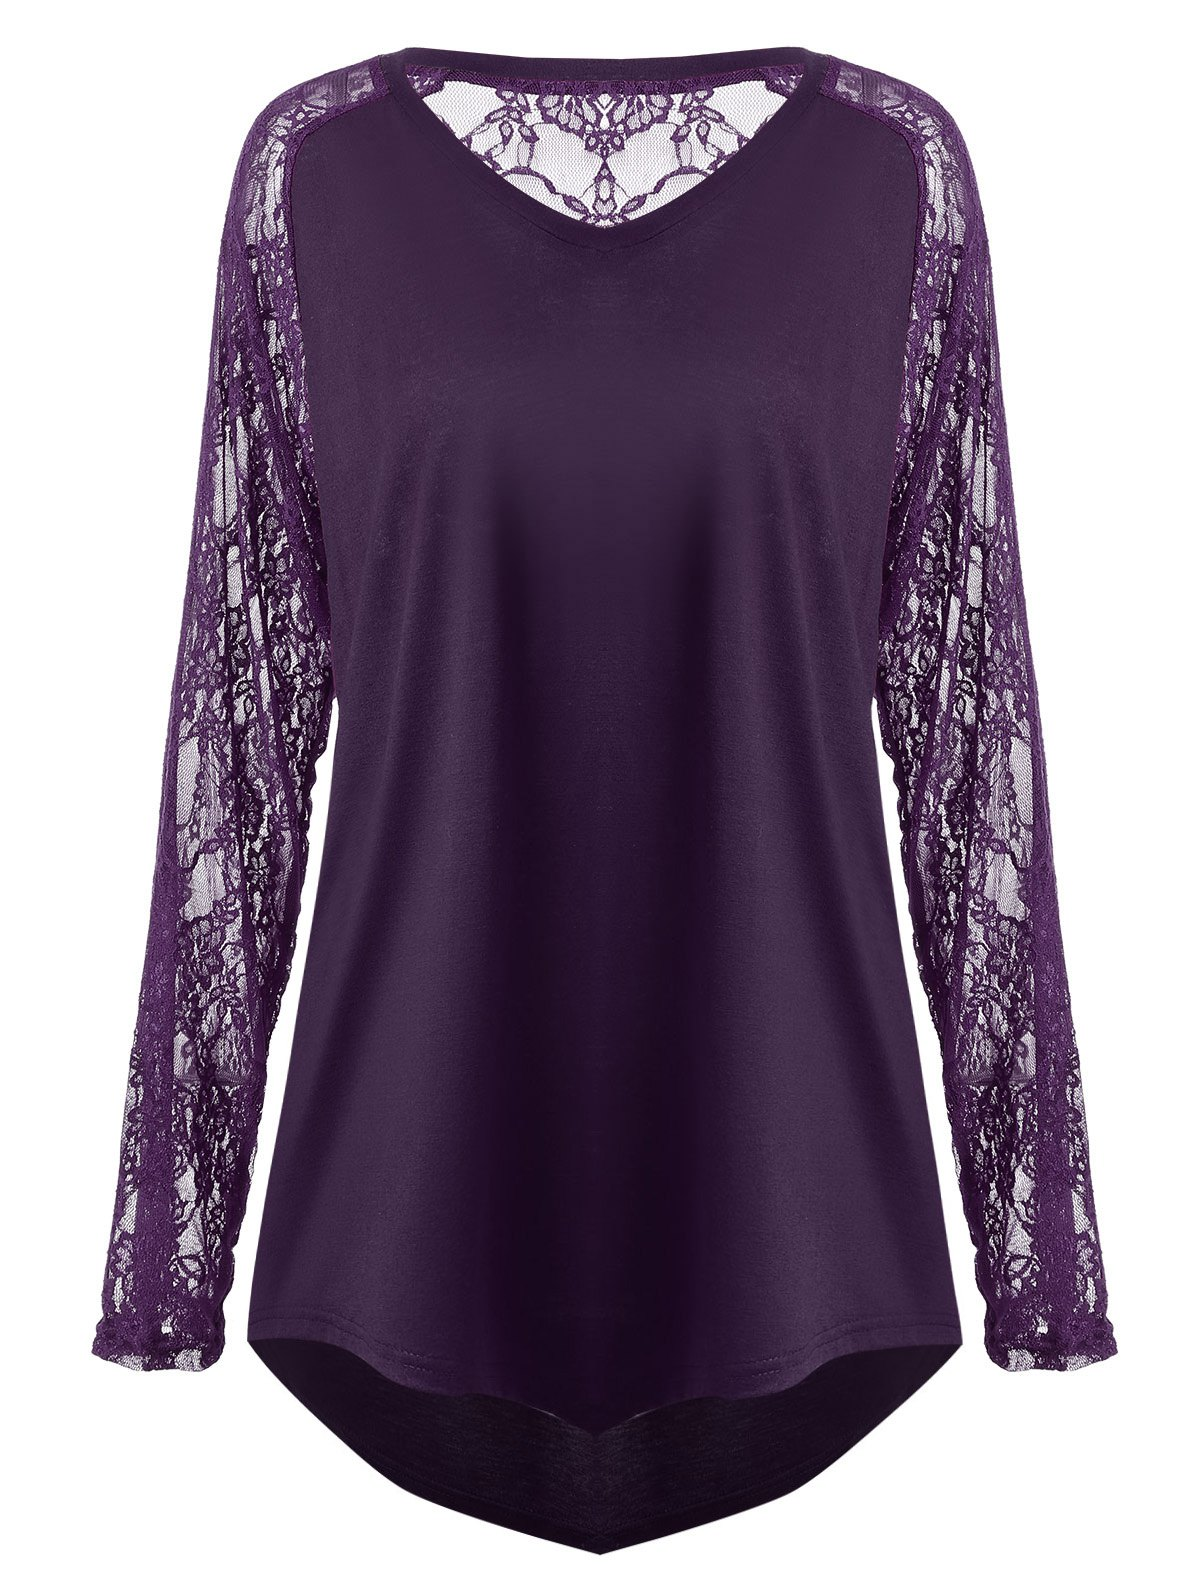 Plus Size Sheer Lace Panel Asymmetric T-shirtWOMEN<br><br>Size: 5XL; Color: DEEP PURPLE; Material: Cotton Blends,Polyester; Shirt Length: Long; Sleeve Length: Full; Collar: V-Neck; Style: Casual; Season: Fall,Spring; Embellishment: Hollow Out,Lace,See Thru; Pattern Type: Solid; Weight: 0.2500kg; Package Contents: 1 x Tee;